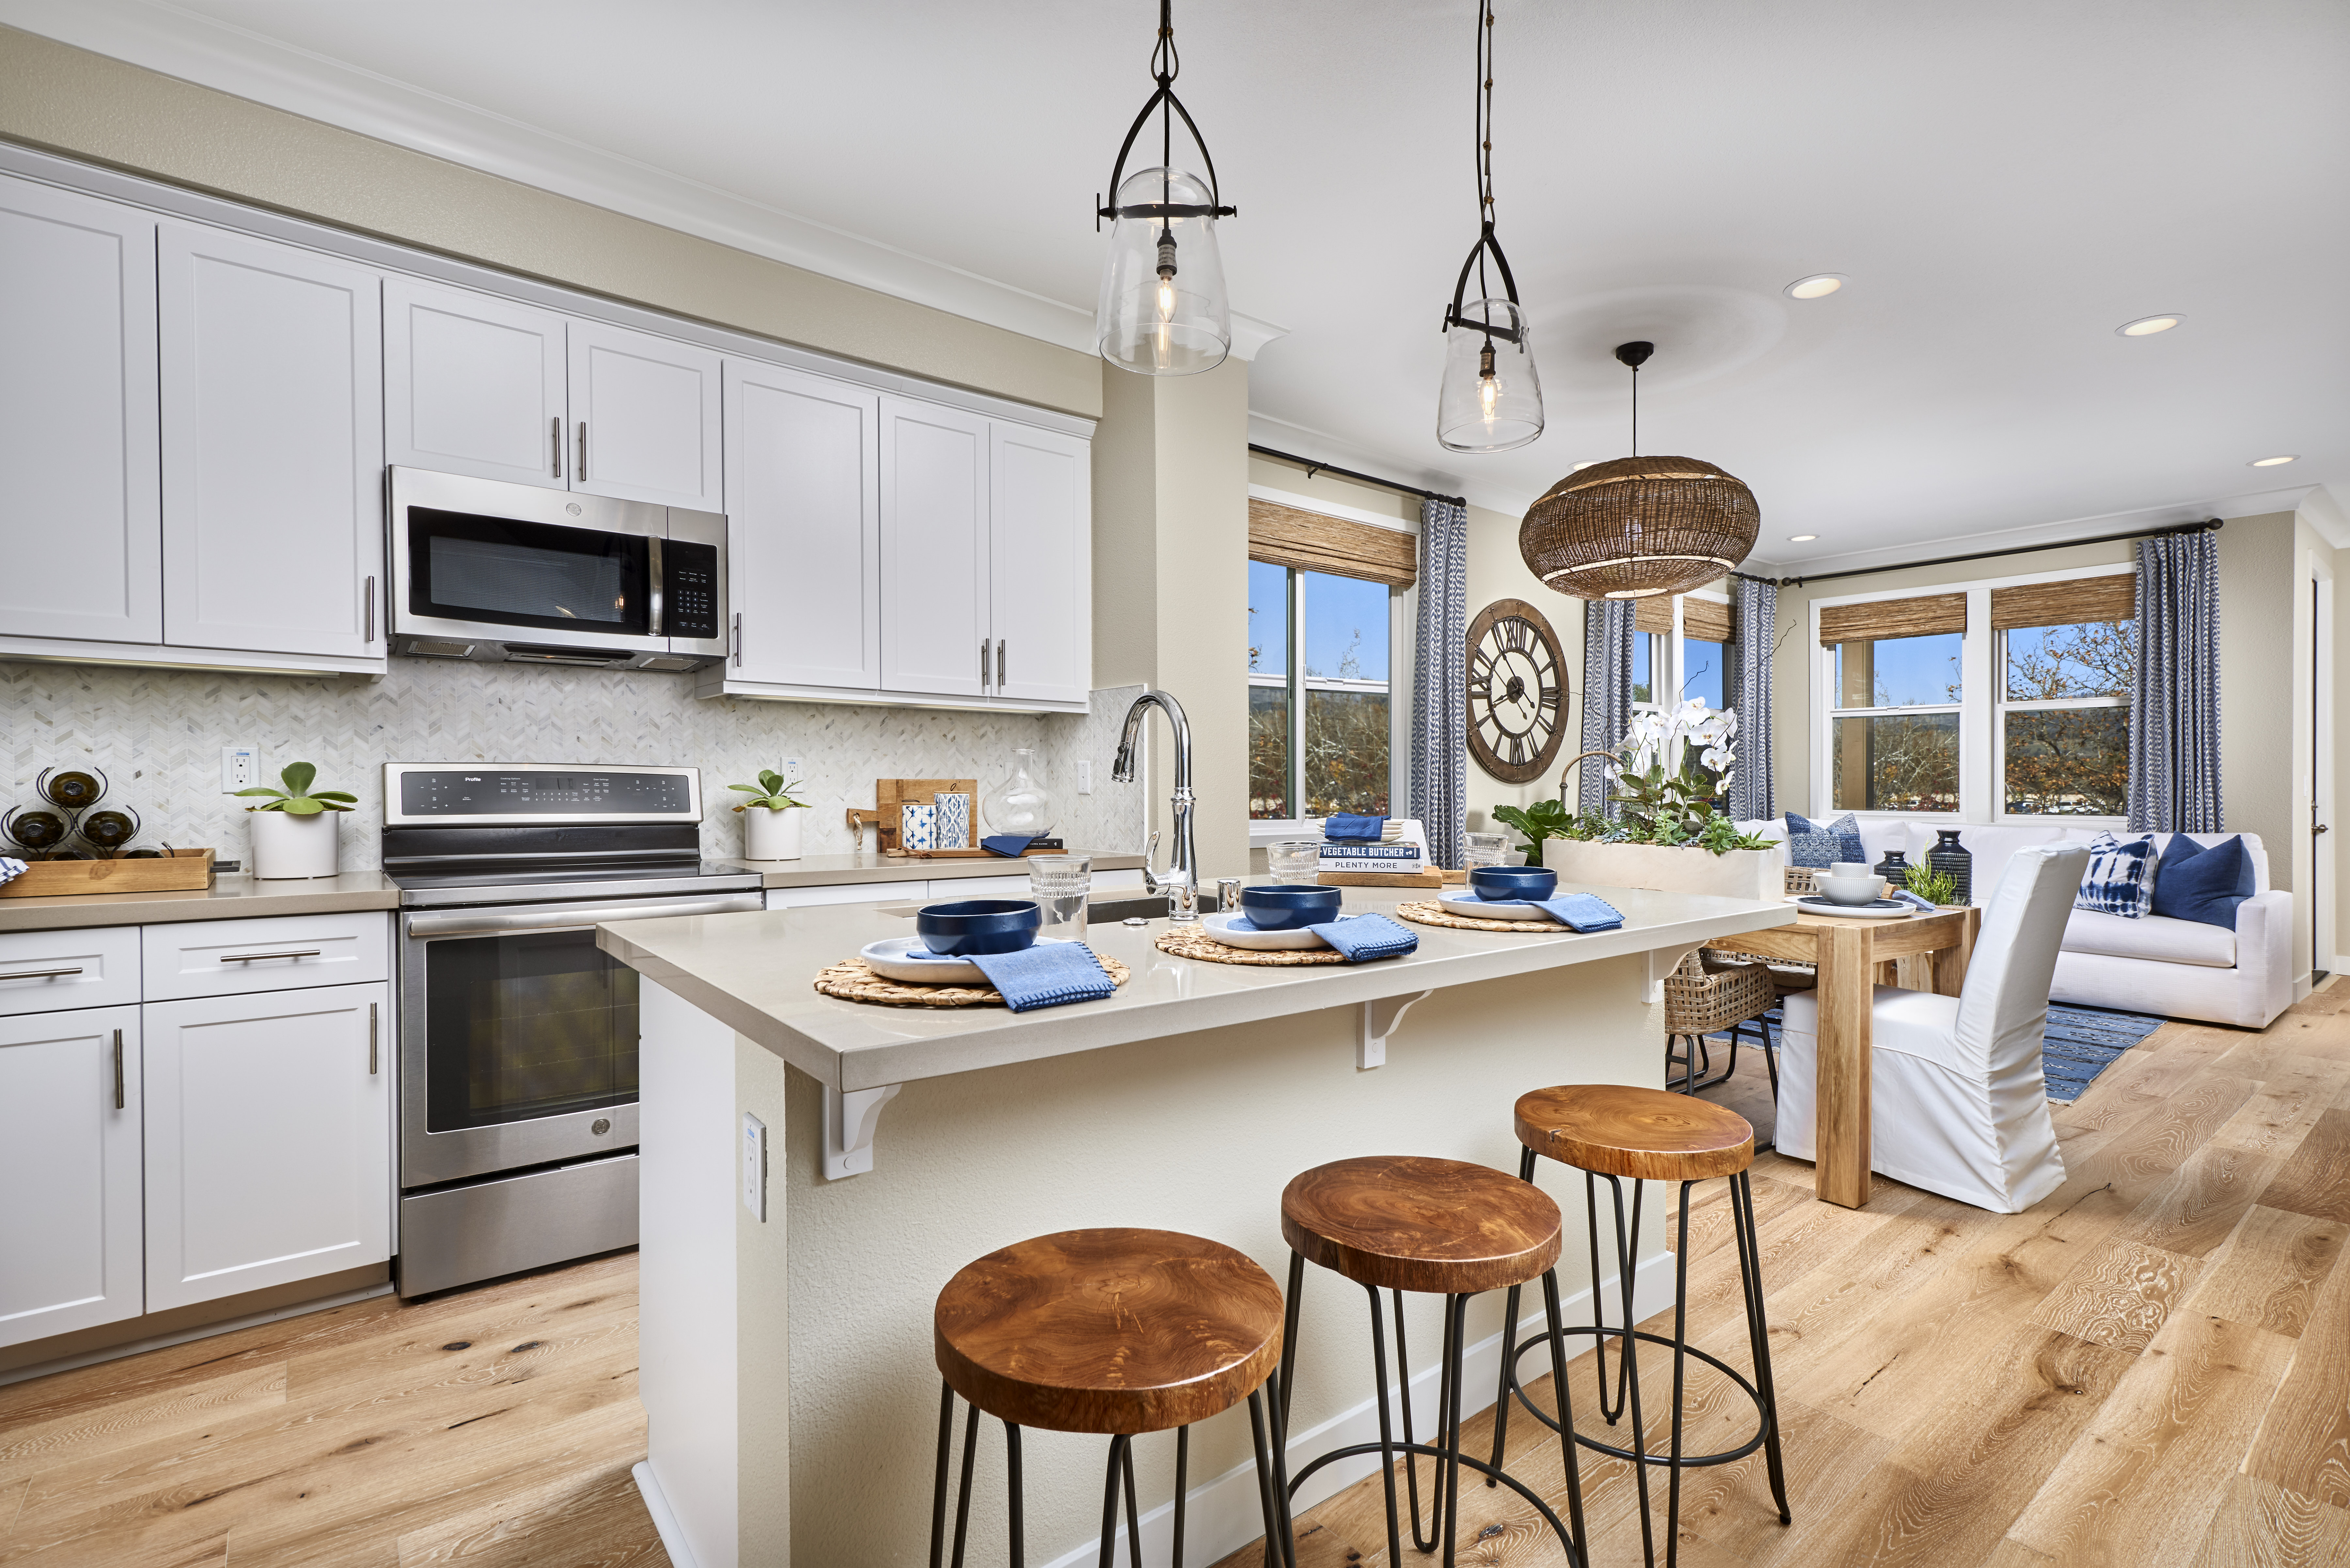 Interior shot of modern kitchen with light wood floors, unique light fixtures, white furniture with blue accents